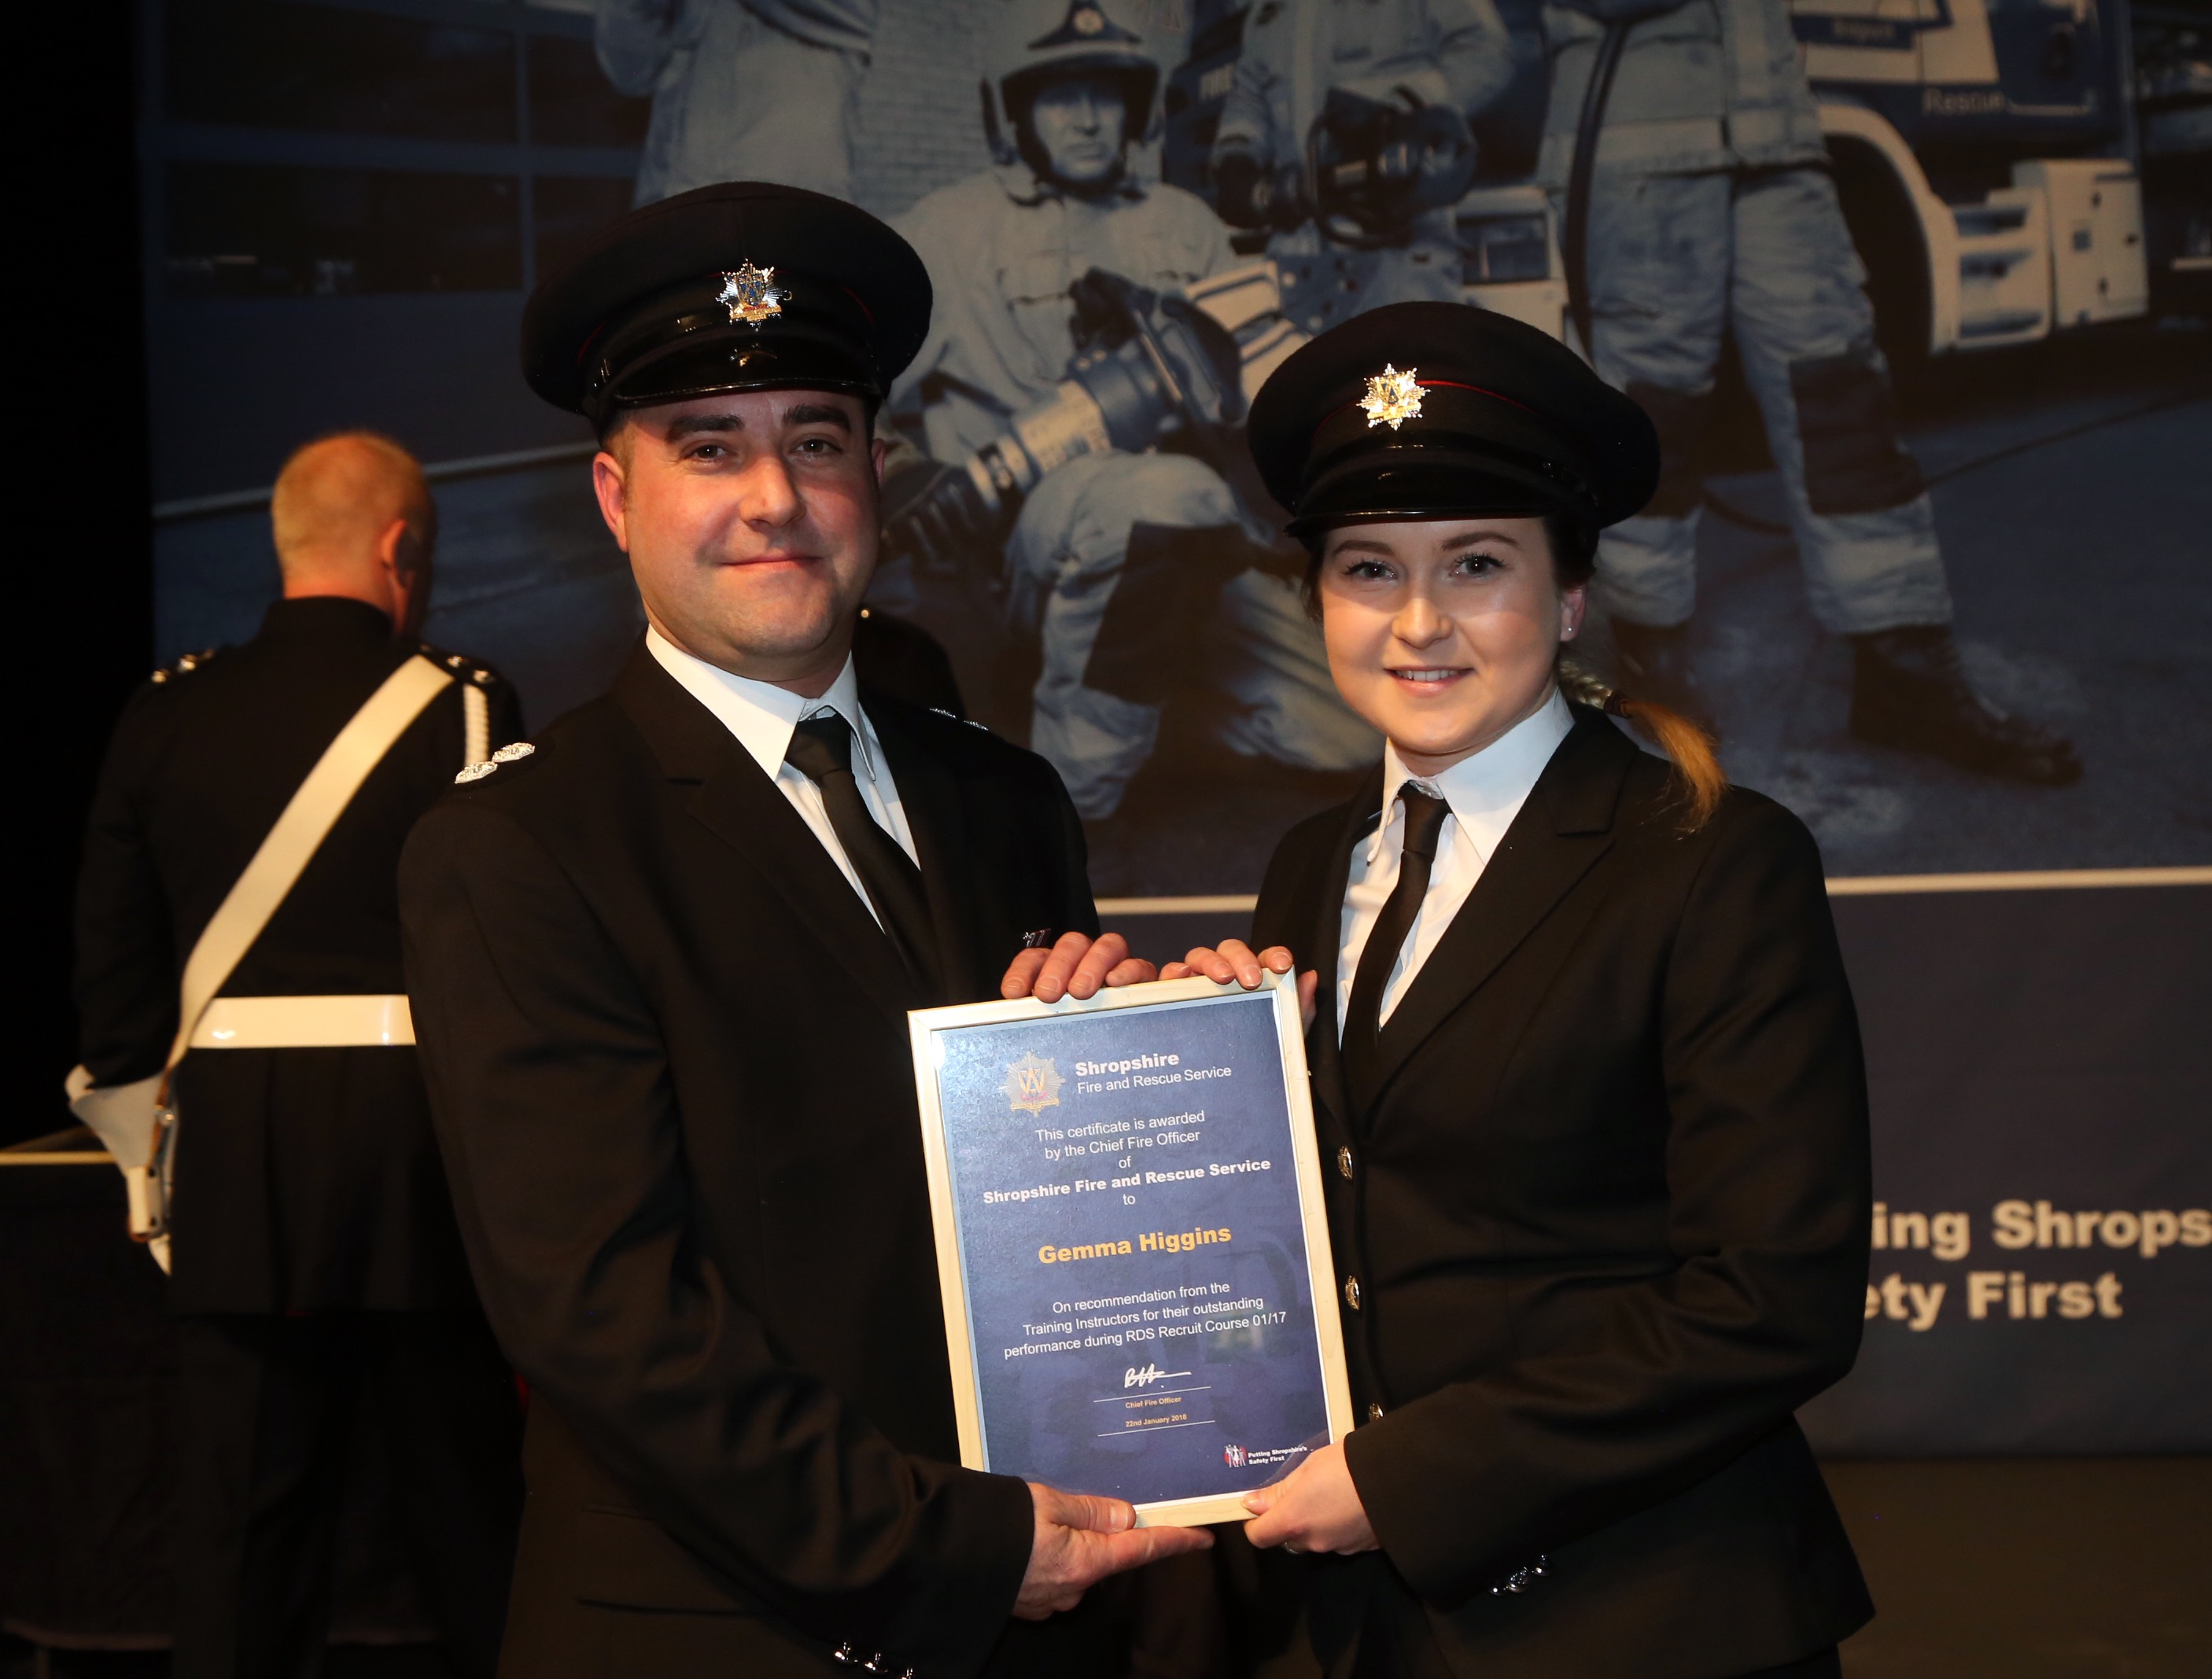 Firefighter Gemma Higgins, from Wem was one of three new recruits to receive an award from instructor Matt Angell for their outstanding performance during training